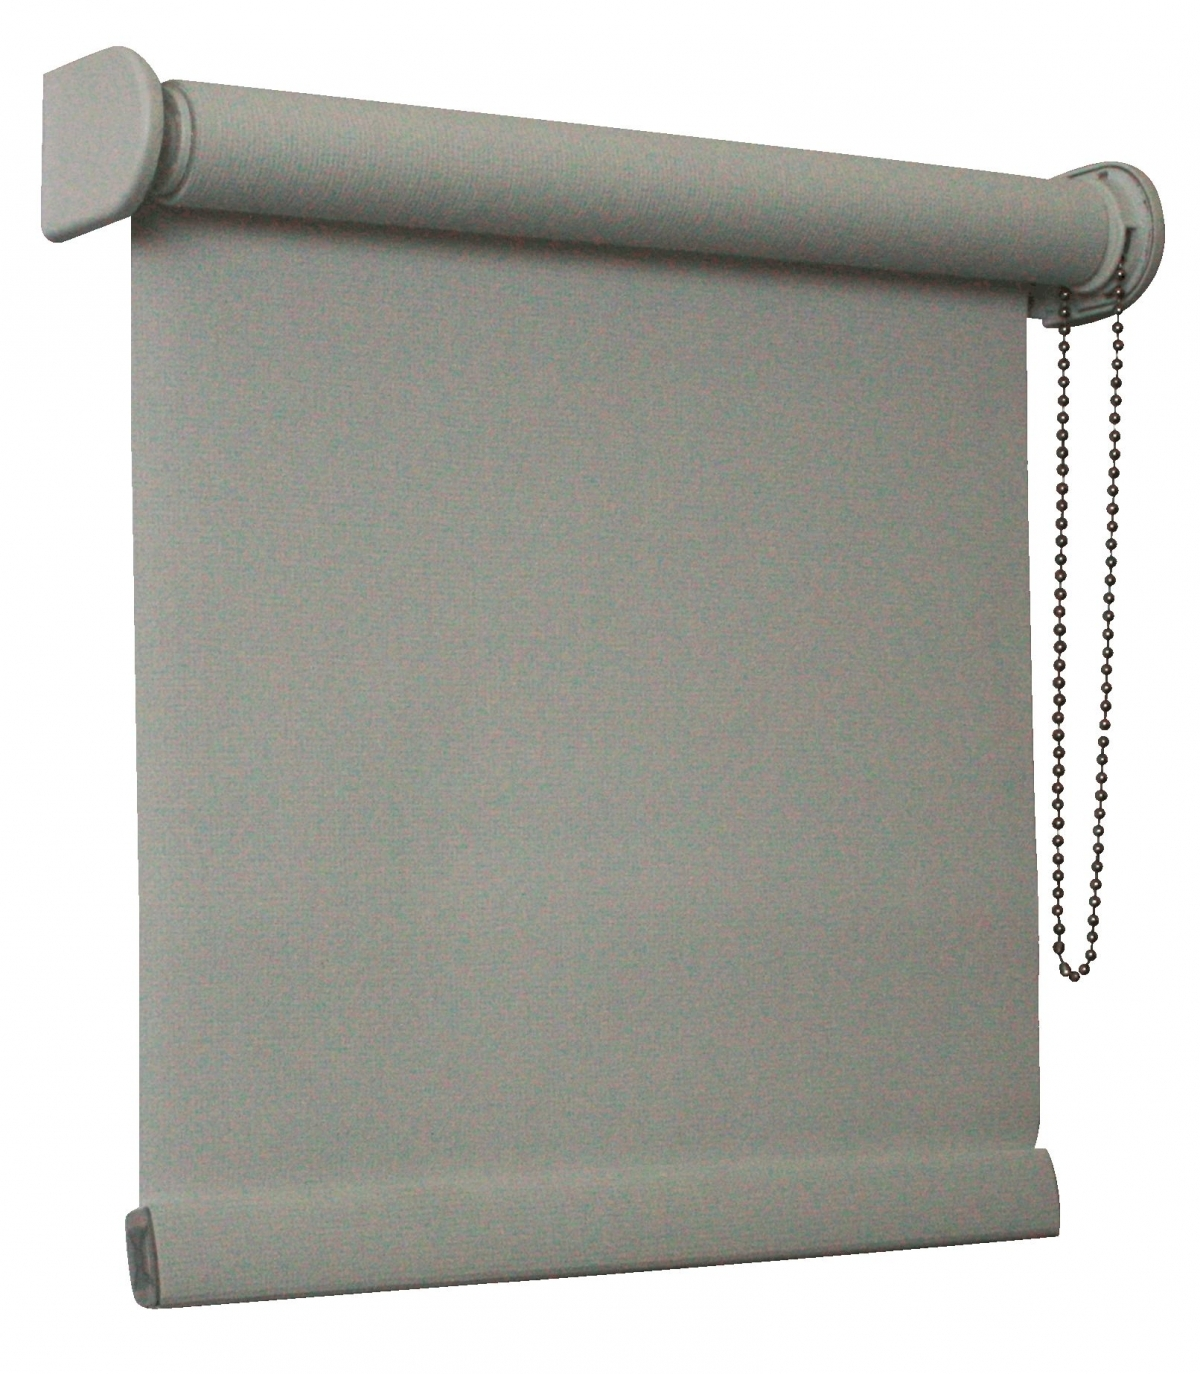 Roller Blind In Dim Out Fabric Colour Beige With Metail Chain Control Farbic Wrapped Bottom Bar Metal Brackets And Barrel Within Roller Fabric Blinds (Image 11 of 15)